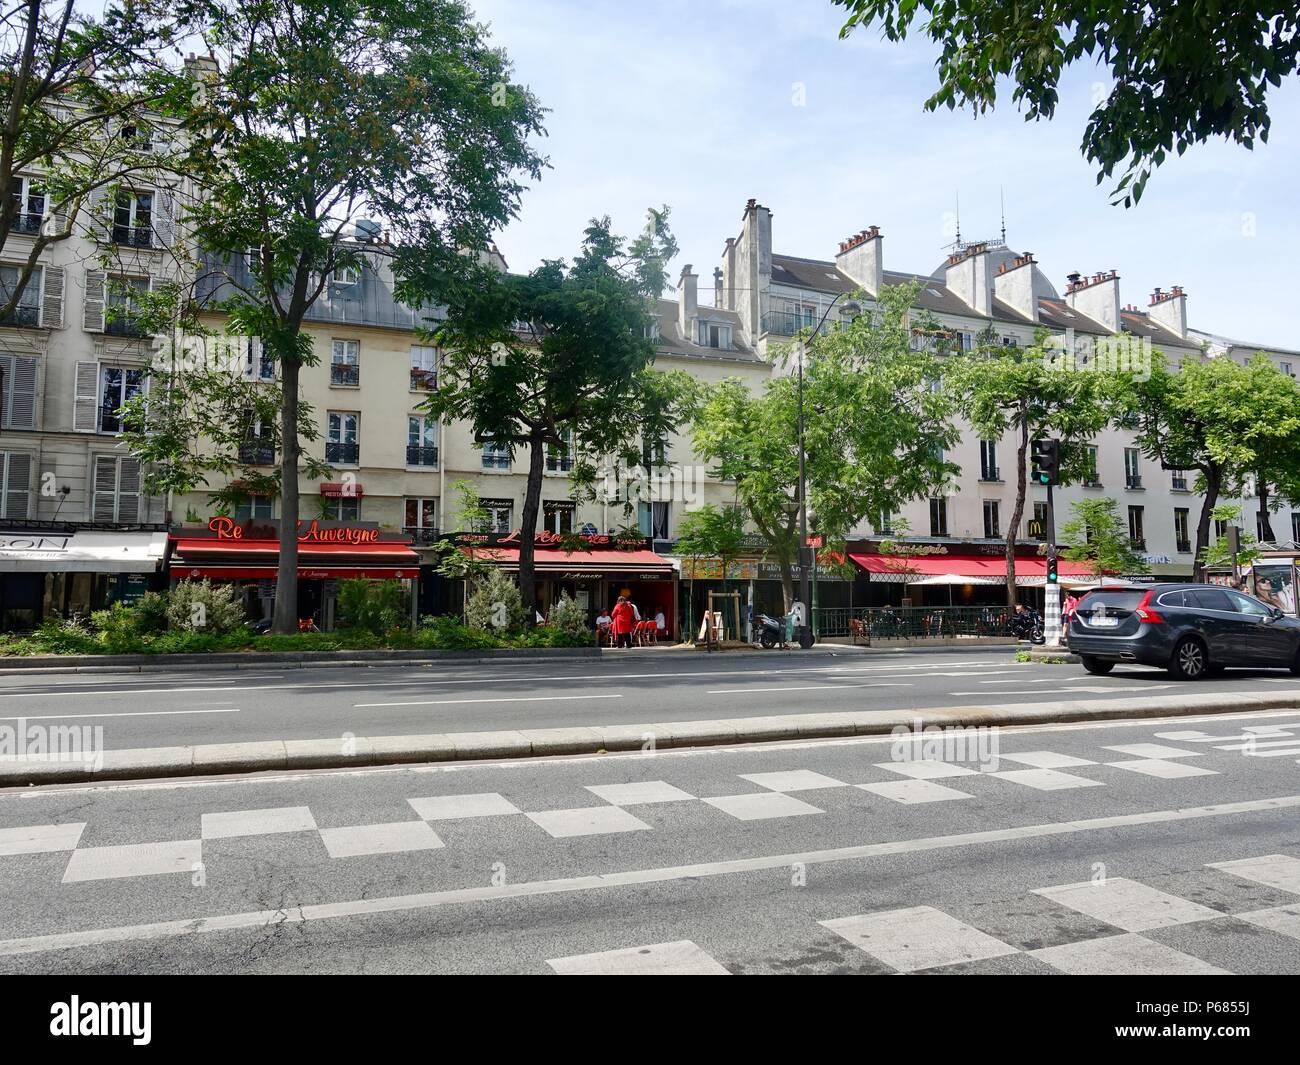 Street view, light traffic on a Sunday afternoon, Boulevard de l'Hopital, between Austerlitz train station and the Garden des Plantes, Paris, France - Stock Image